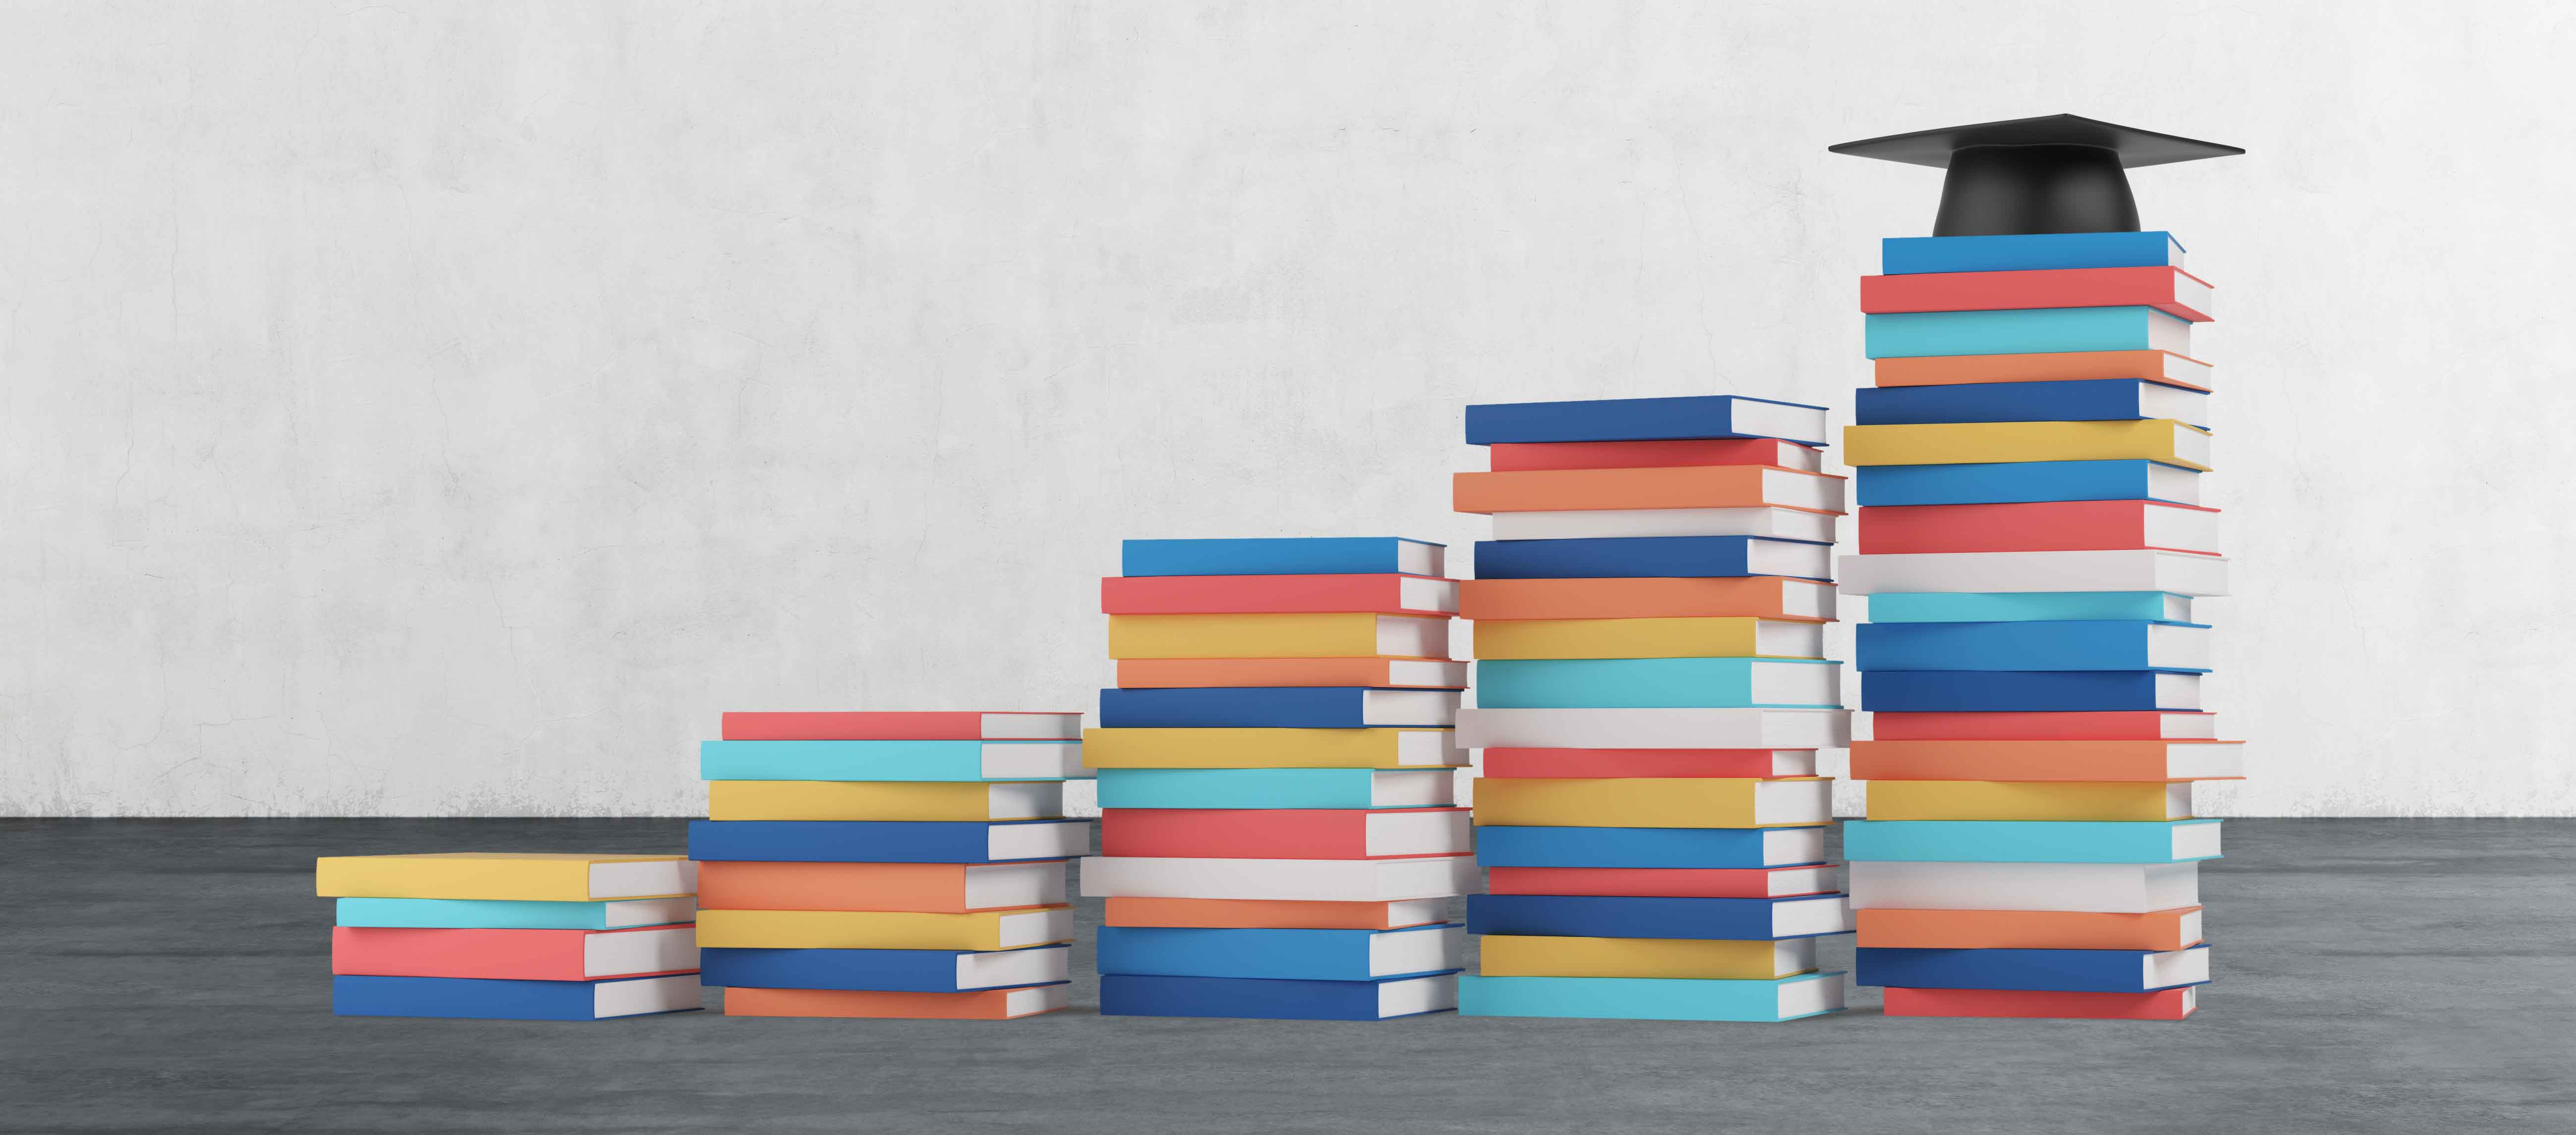 Stacks of college textbooks arranged in a stairway to a graduation cap